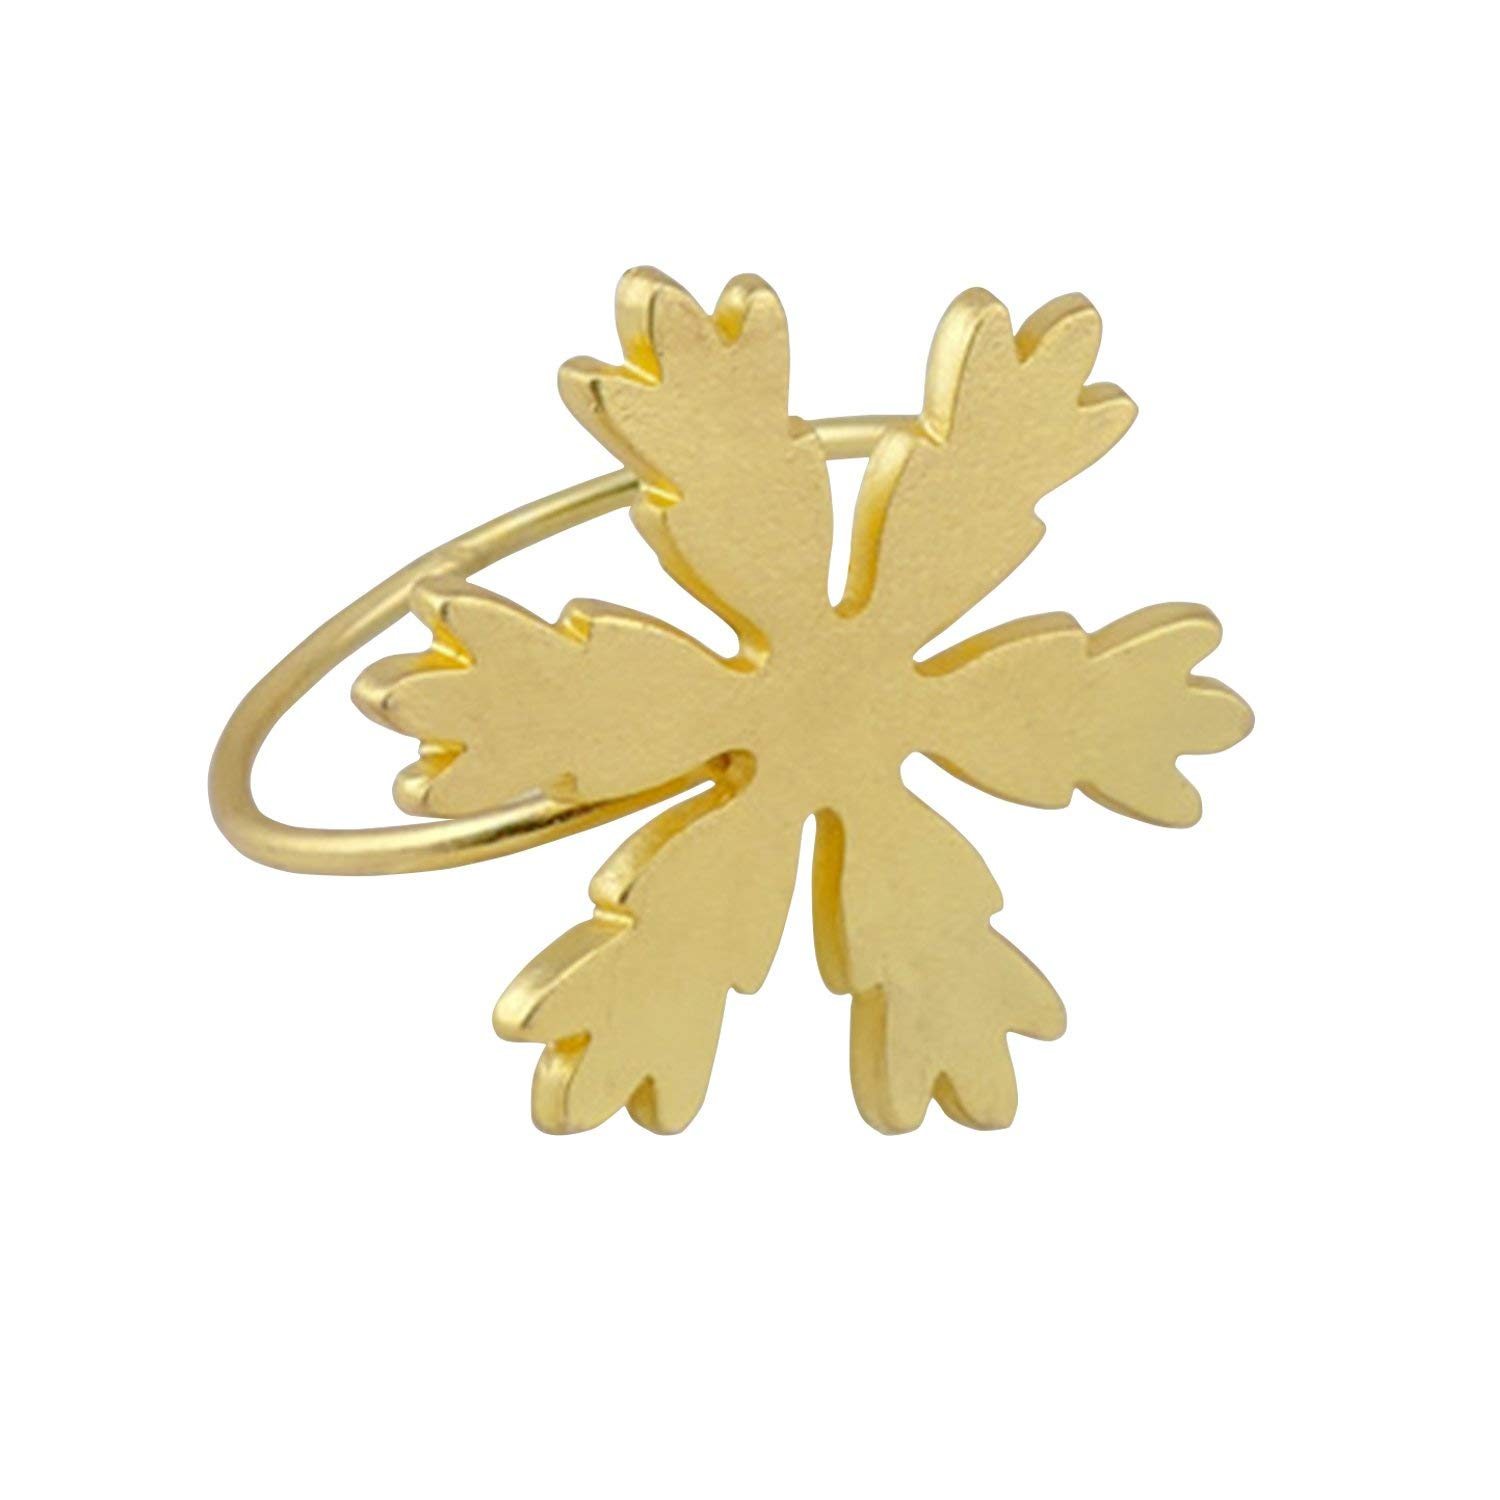 Elehere Snowflake Napkin Rings Set of 4 Gold for Holiday Christams Gift Wedding Party Table (H2 Gold, Set of 4)